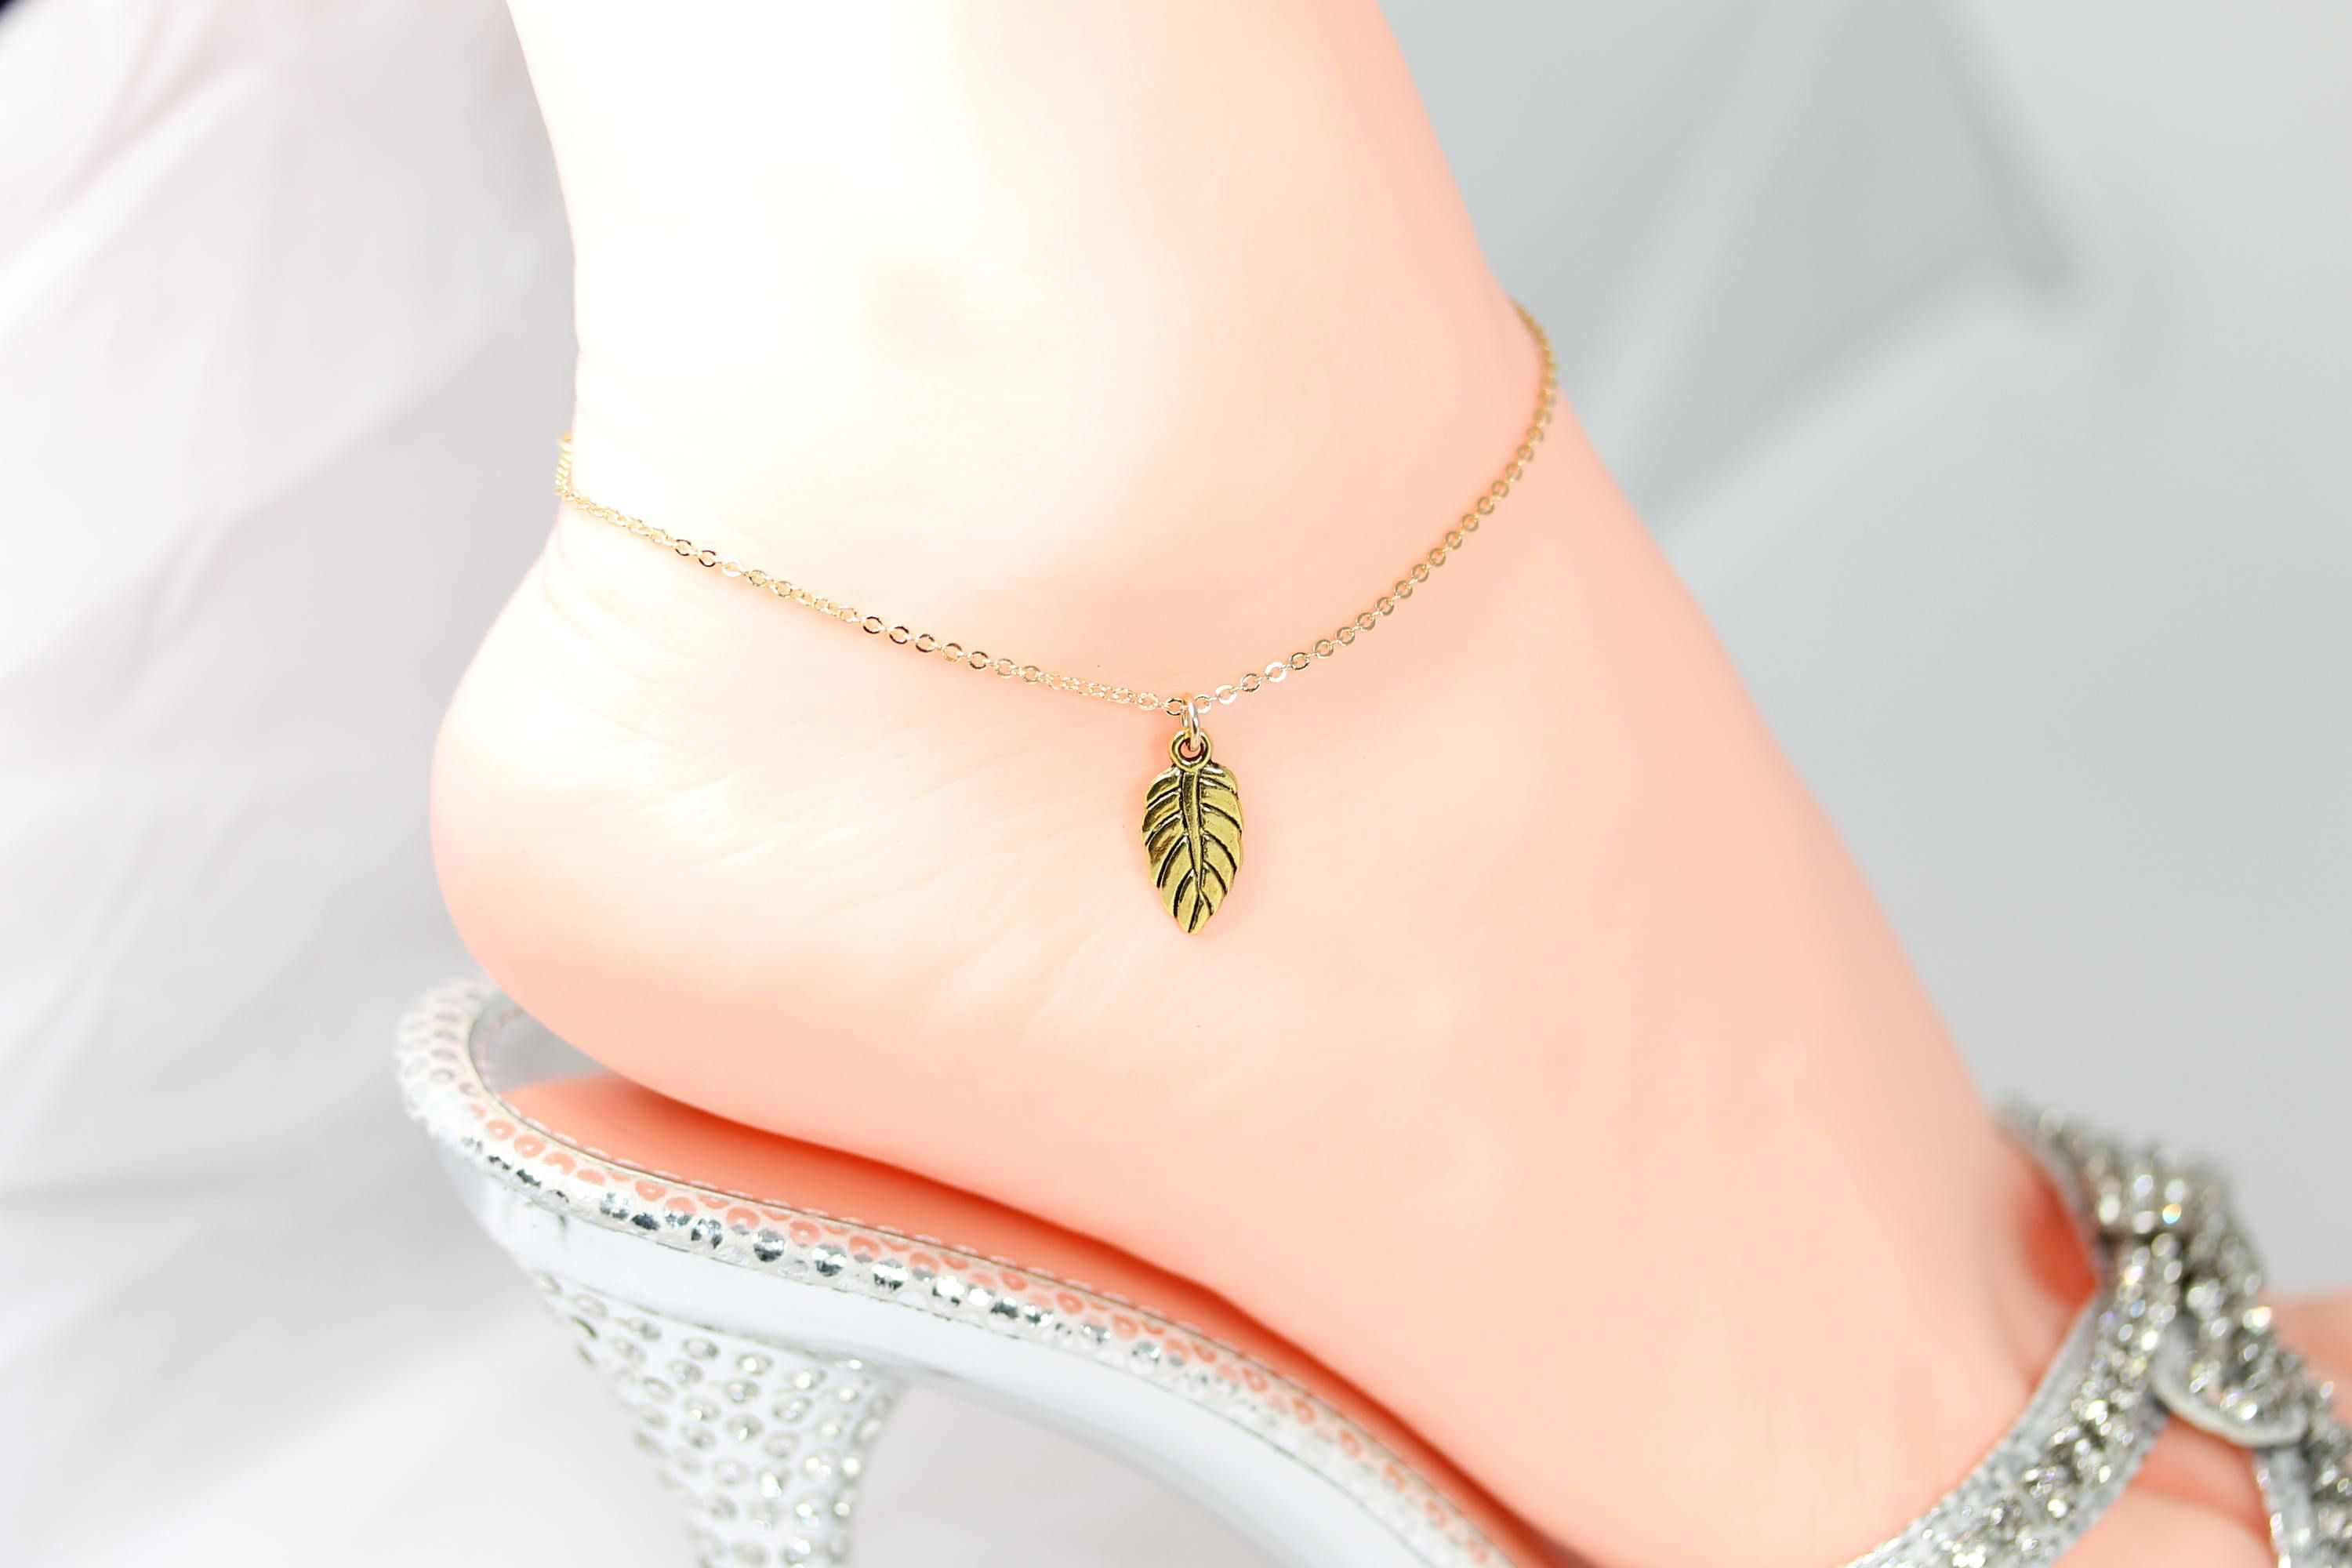 ankle sister fill her chain from tiny on bracelet gold heart anklet filled set etsy juljewelry for thin layering p beads high gift of quality silver bracelets